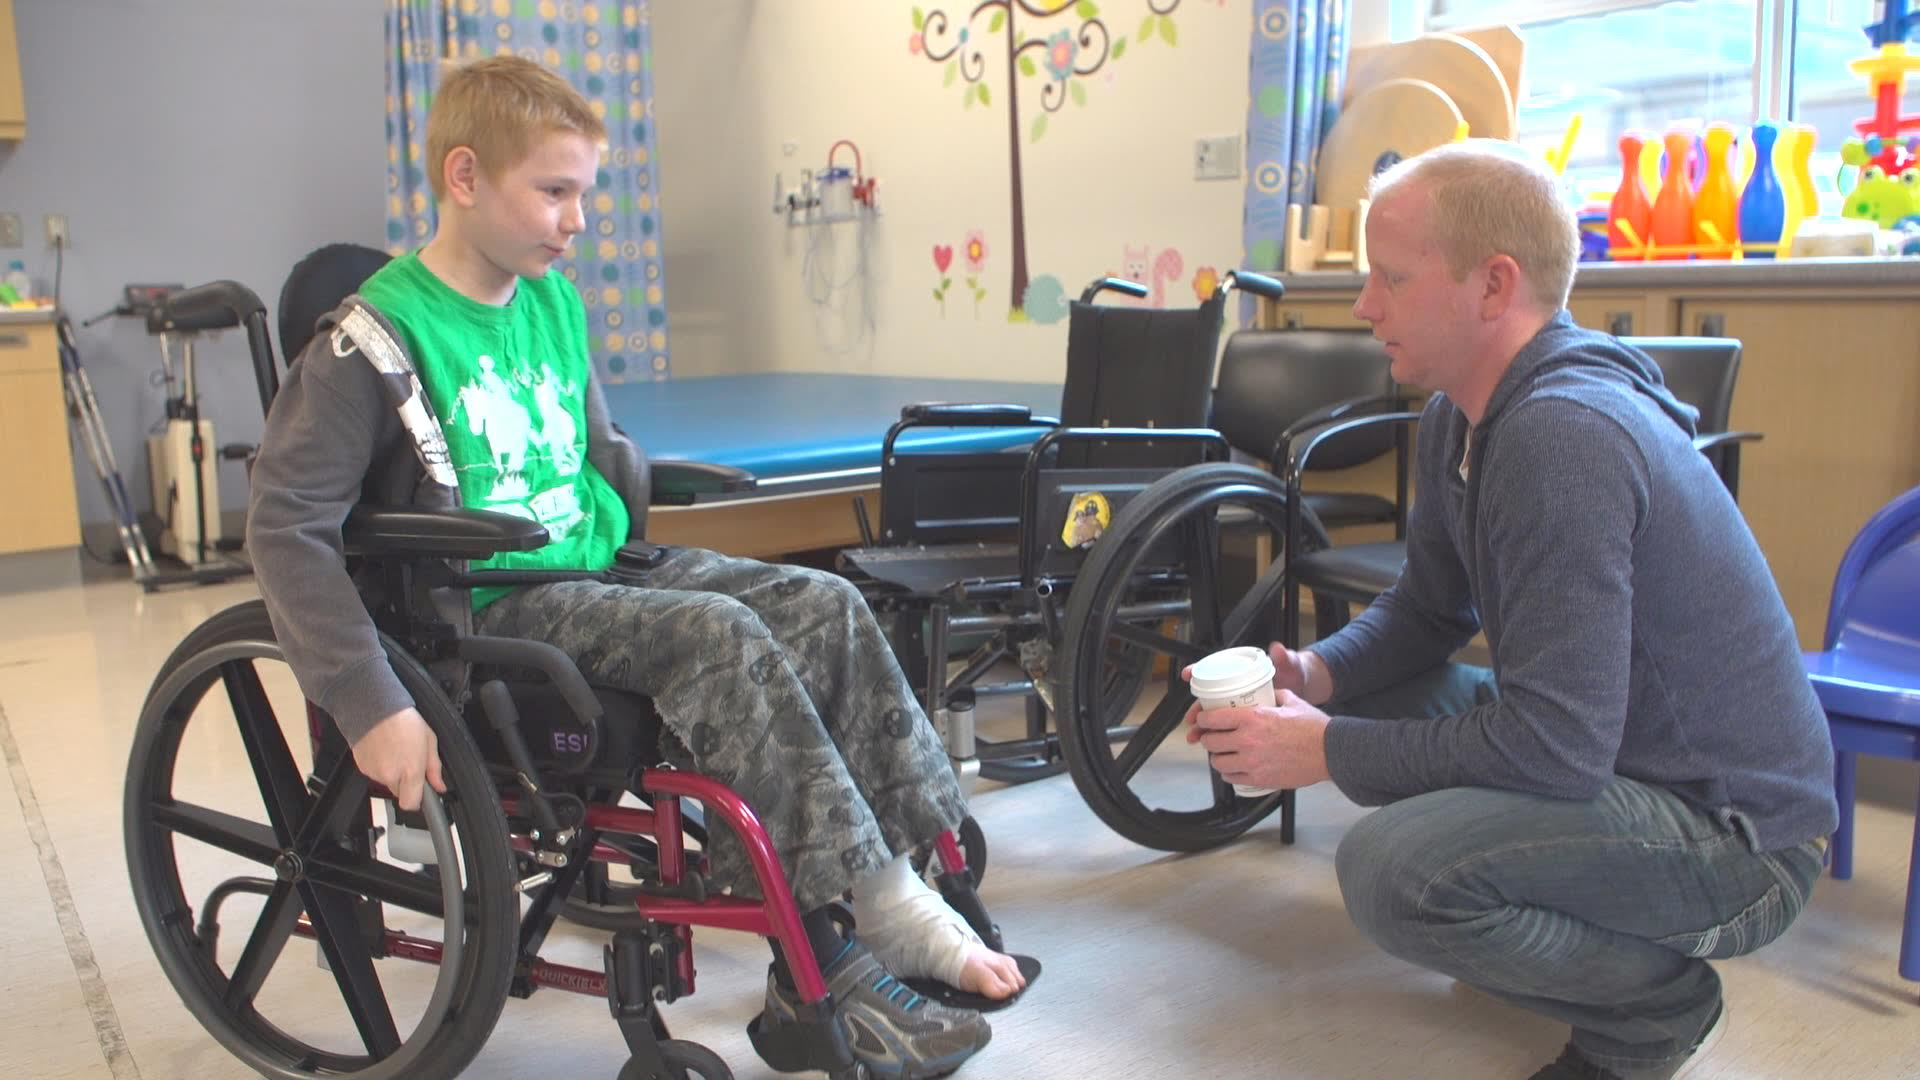 Johannes in his new wheelchair (Variety)